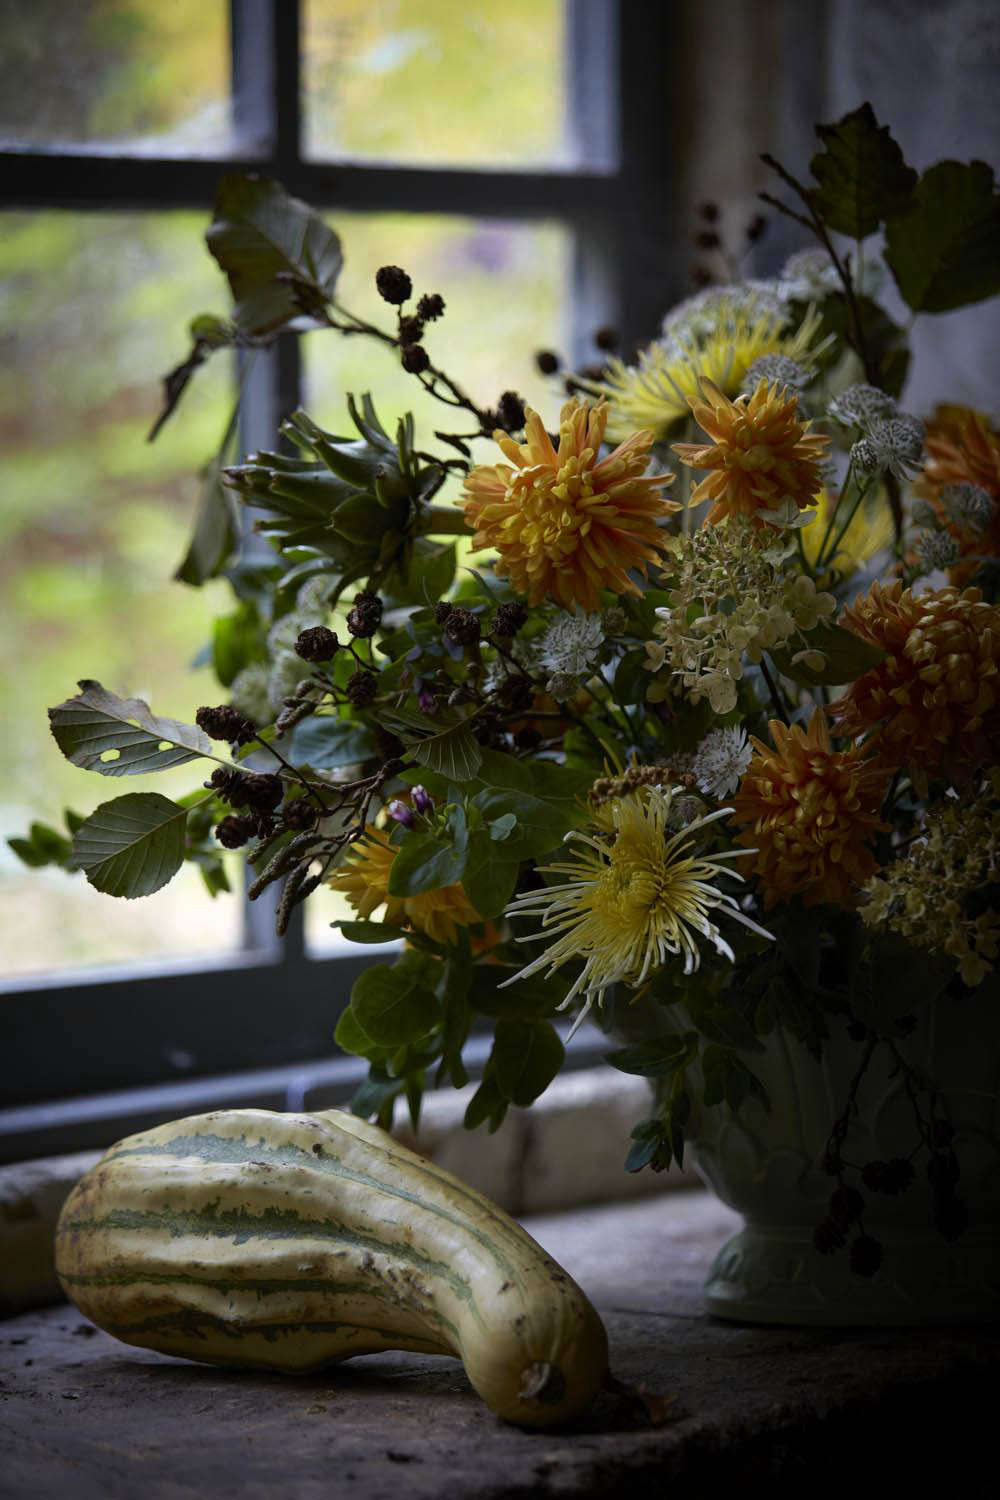 Something for late autumn. Orange and pale yellow chrysanthemums mix with white astrantia, branches of alder, and all manner of gourds and squashes.